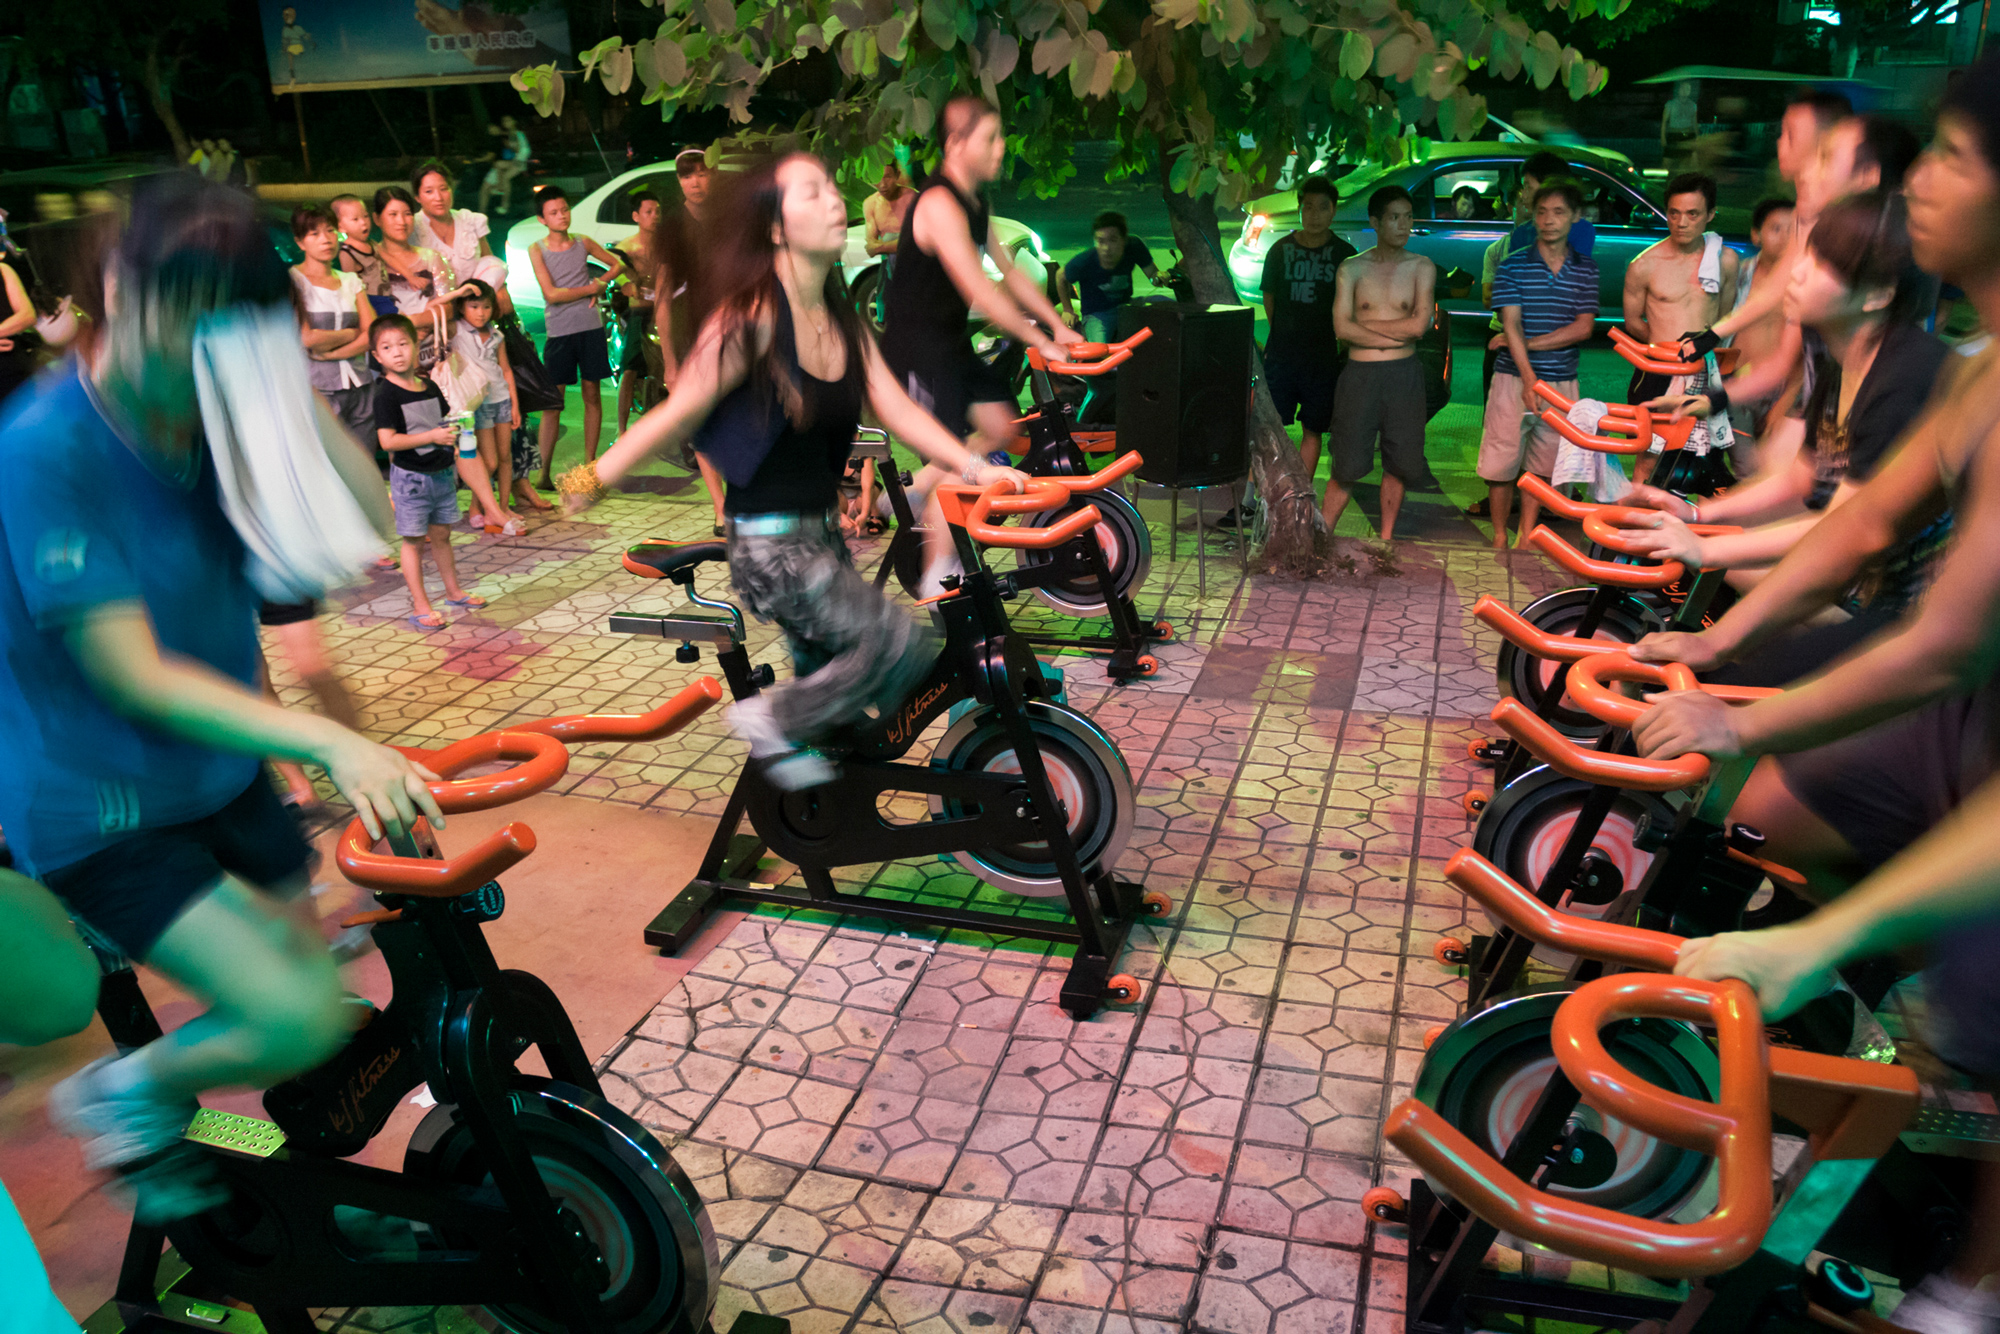 Young people work out at a public fitness facility in Shencheng sub-district, July 30, 2011.